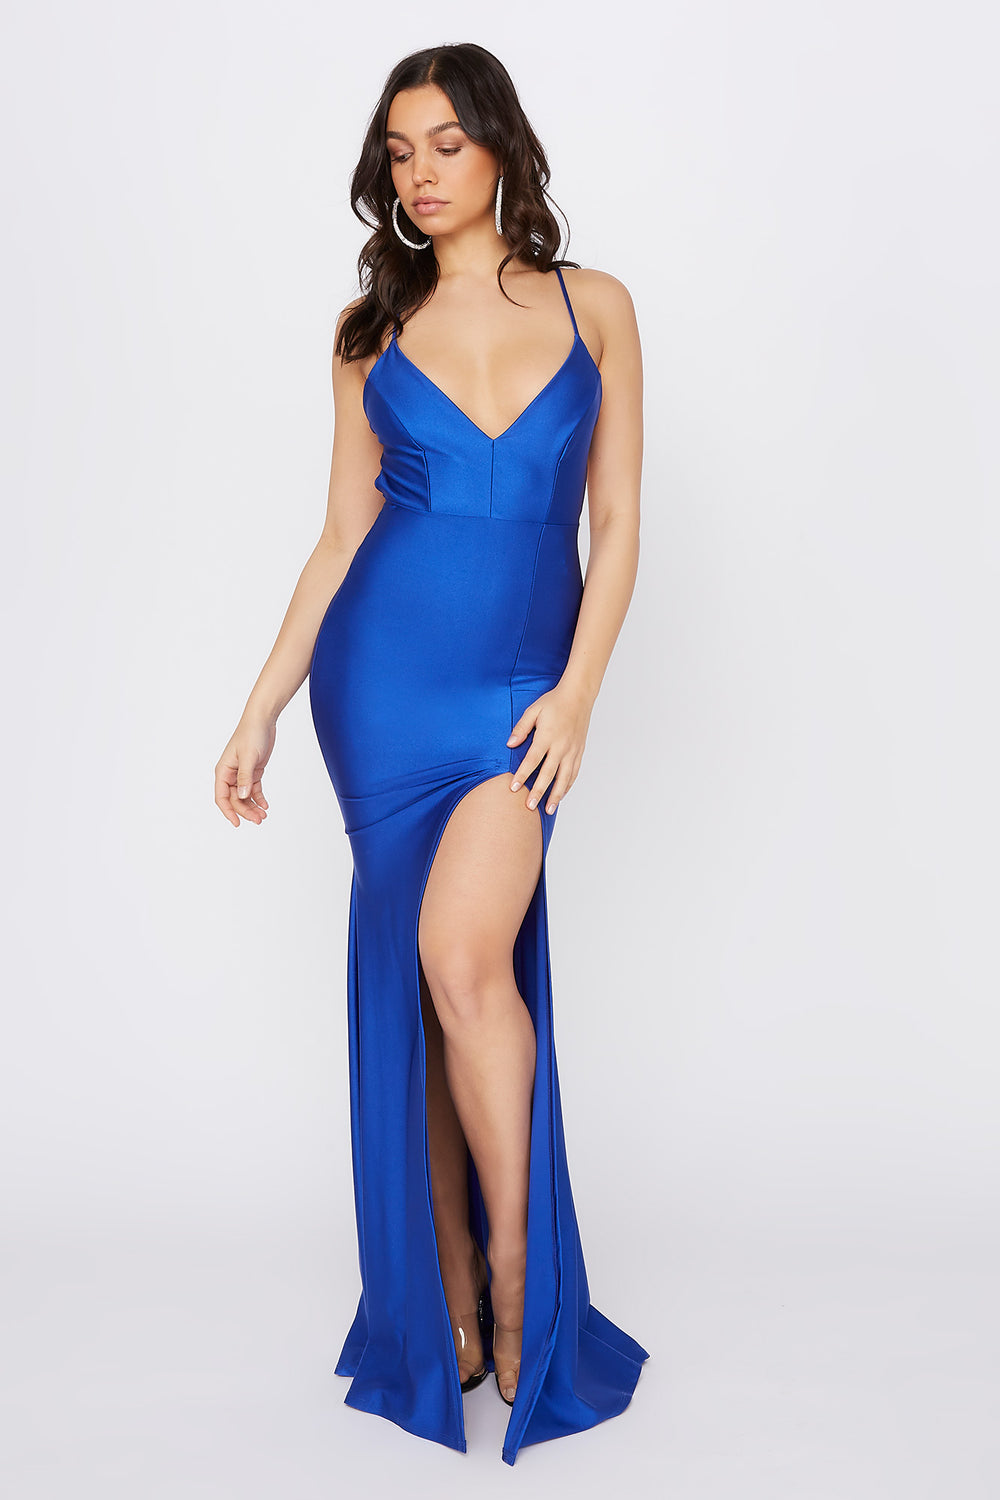 Crystal V-Neck Slit Maxi Dress Royal Blue